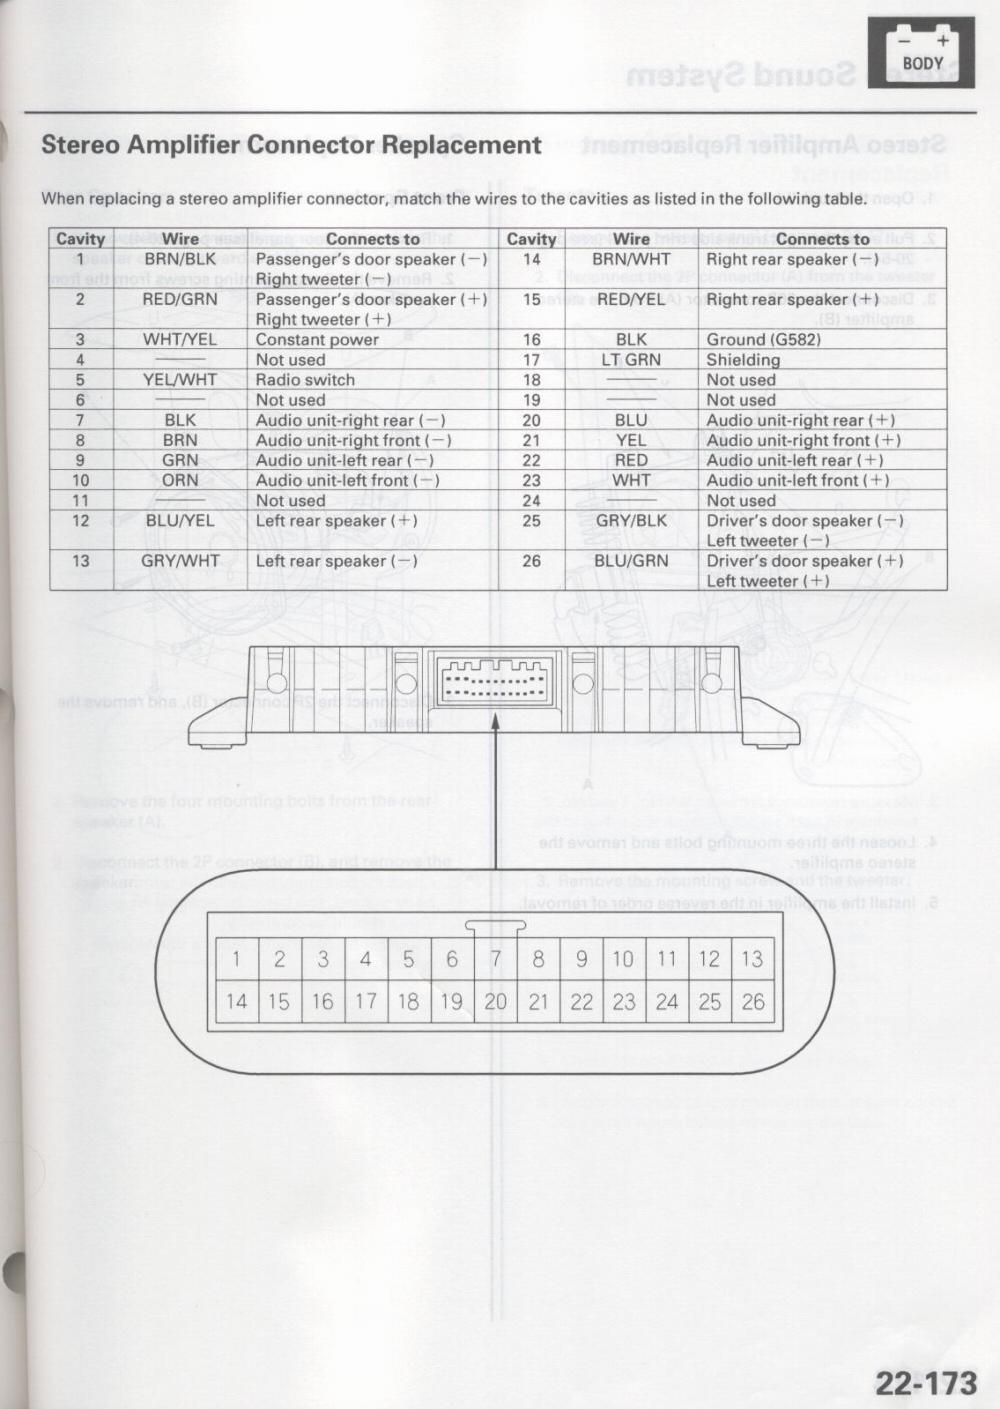 car radio stereo audio wiring diagram autoradio connector wire Wiring Diagram 2002 Acura RSX 02 Sensors and car radio stereo audio wiring diagram autoradio connector wire installation schematic schema esquema de conexiones anschlusskammern konektor at 2002 Acura RSX Headlight Wiring Diagram